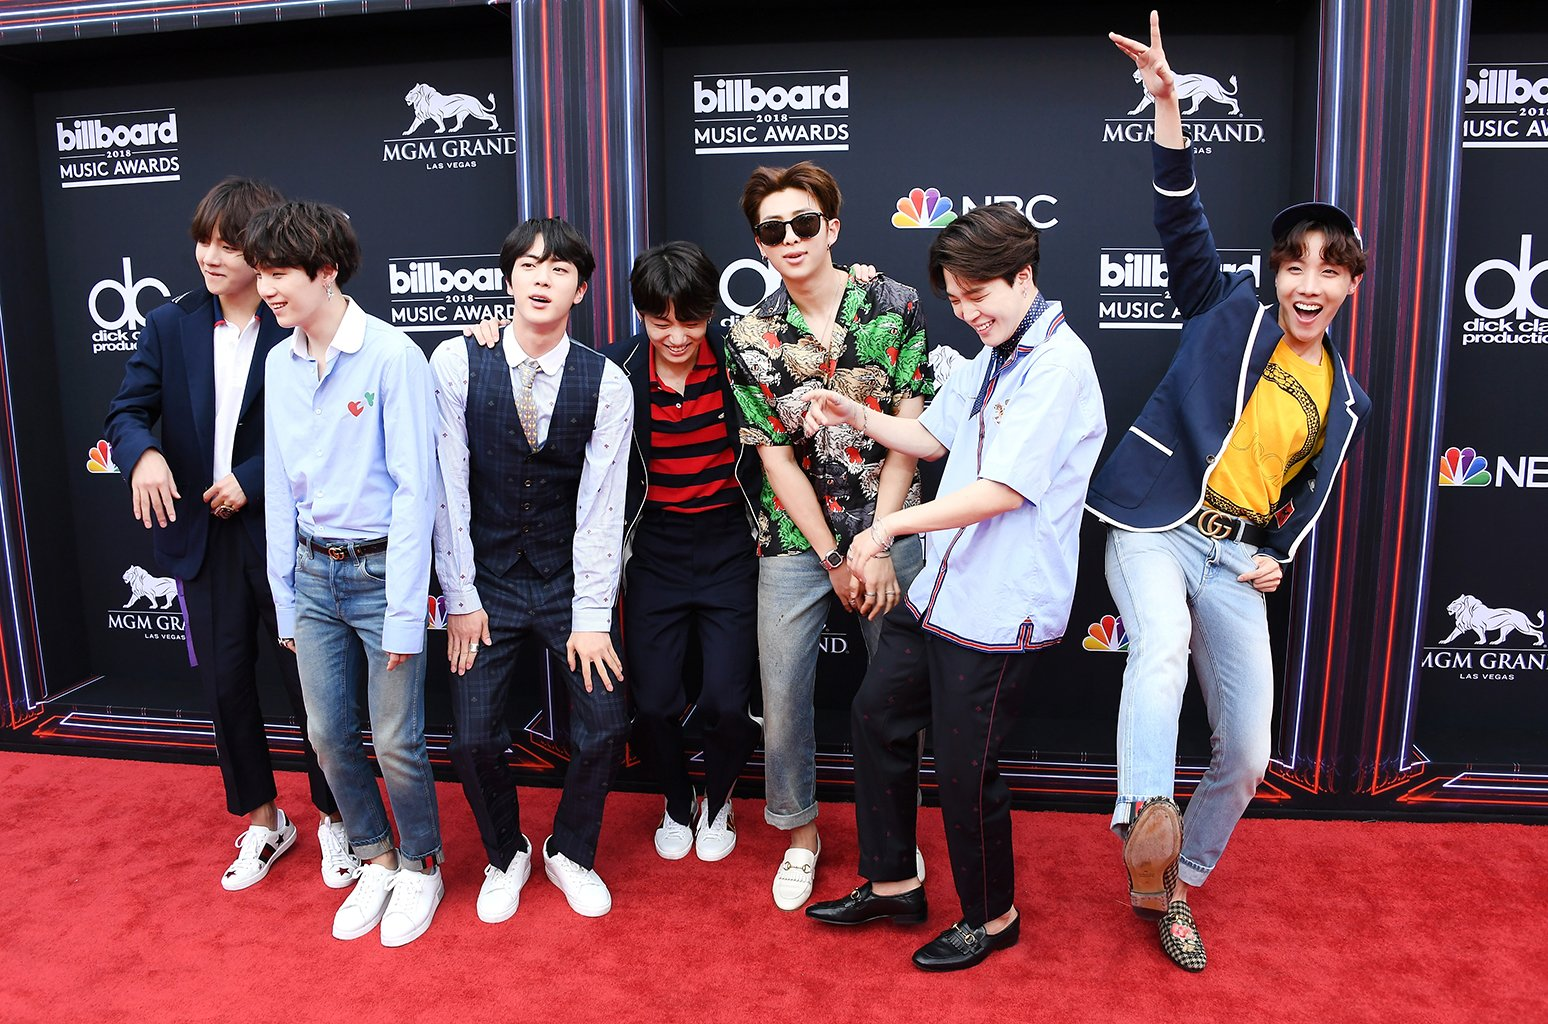 Watch BTS rock out to Ariana Grande, Dua Lipa, Shawn Mendes & more at the #BBMAs https://t.co/KwrTbyNOqS https://t.co/fvApWlRqbm